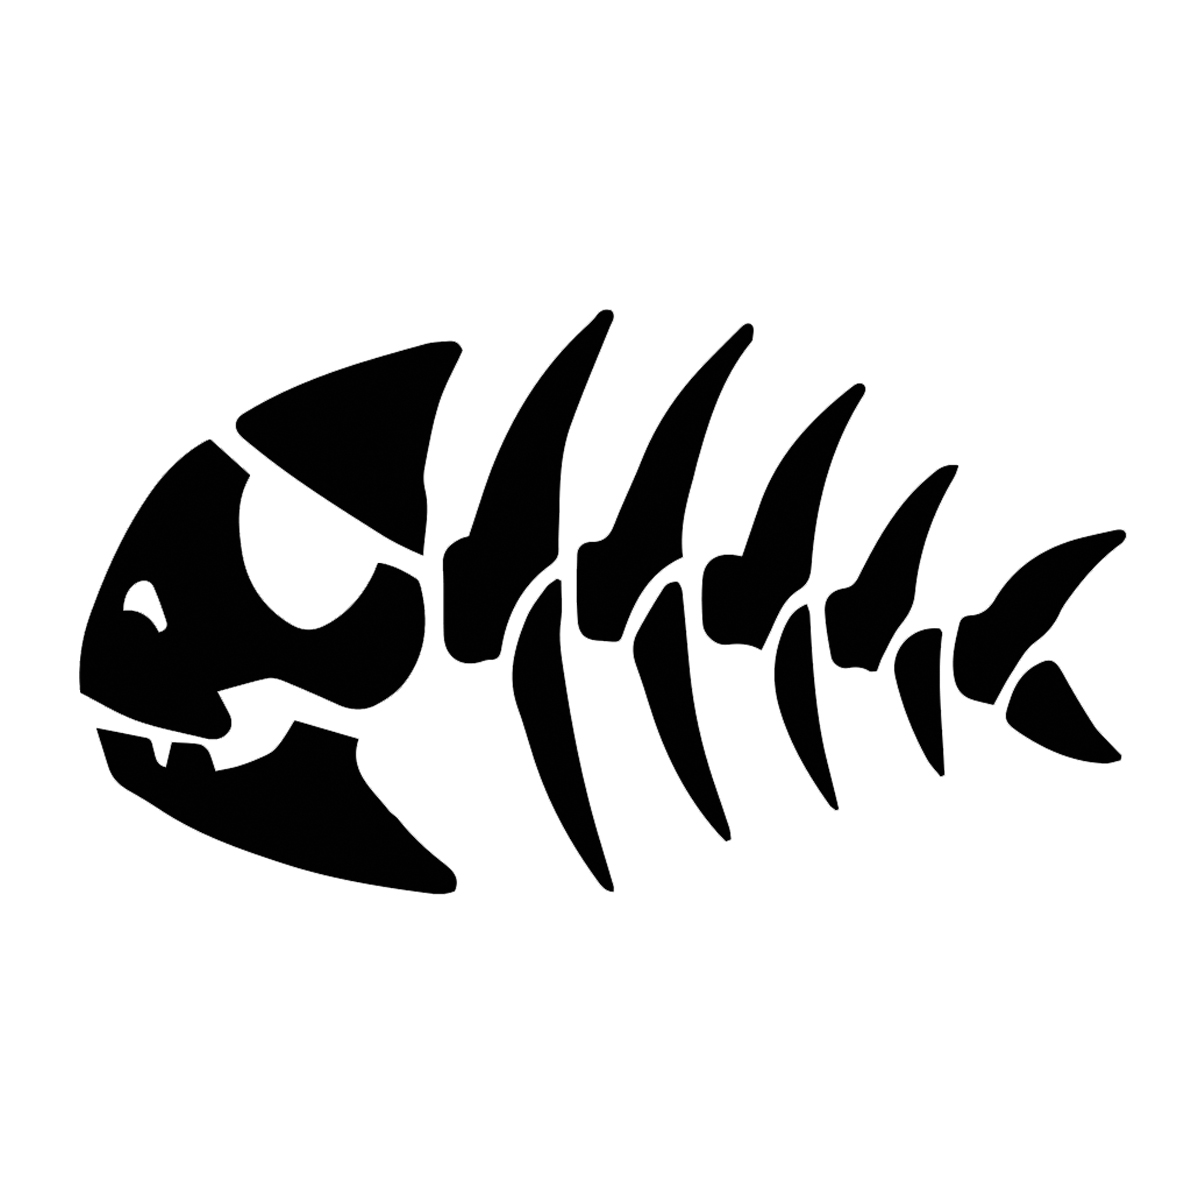 Fsm Jolly Pirate Fish Vinyl Decal